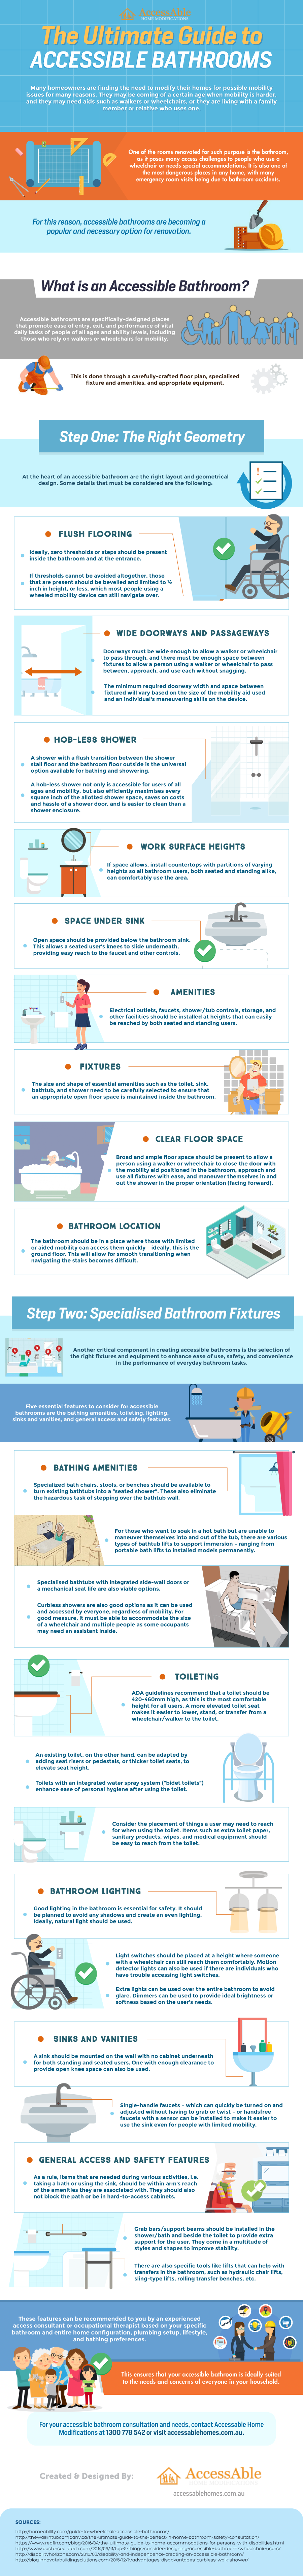 Necessary Features of Accessible Bathrooms - Infographic